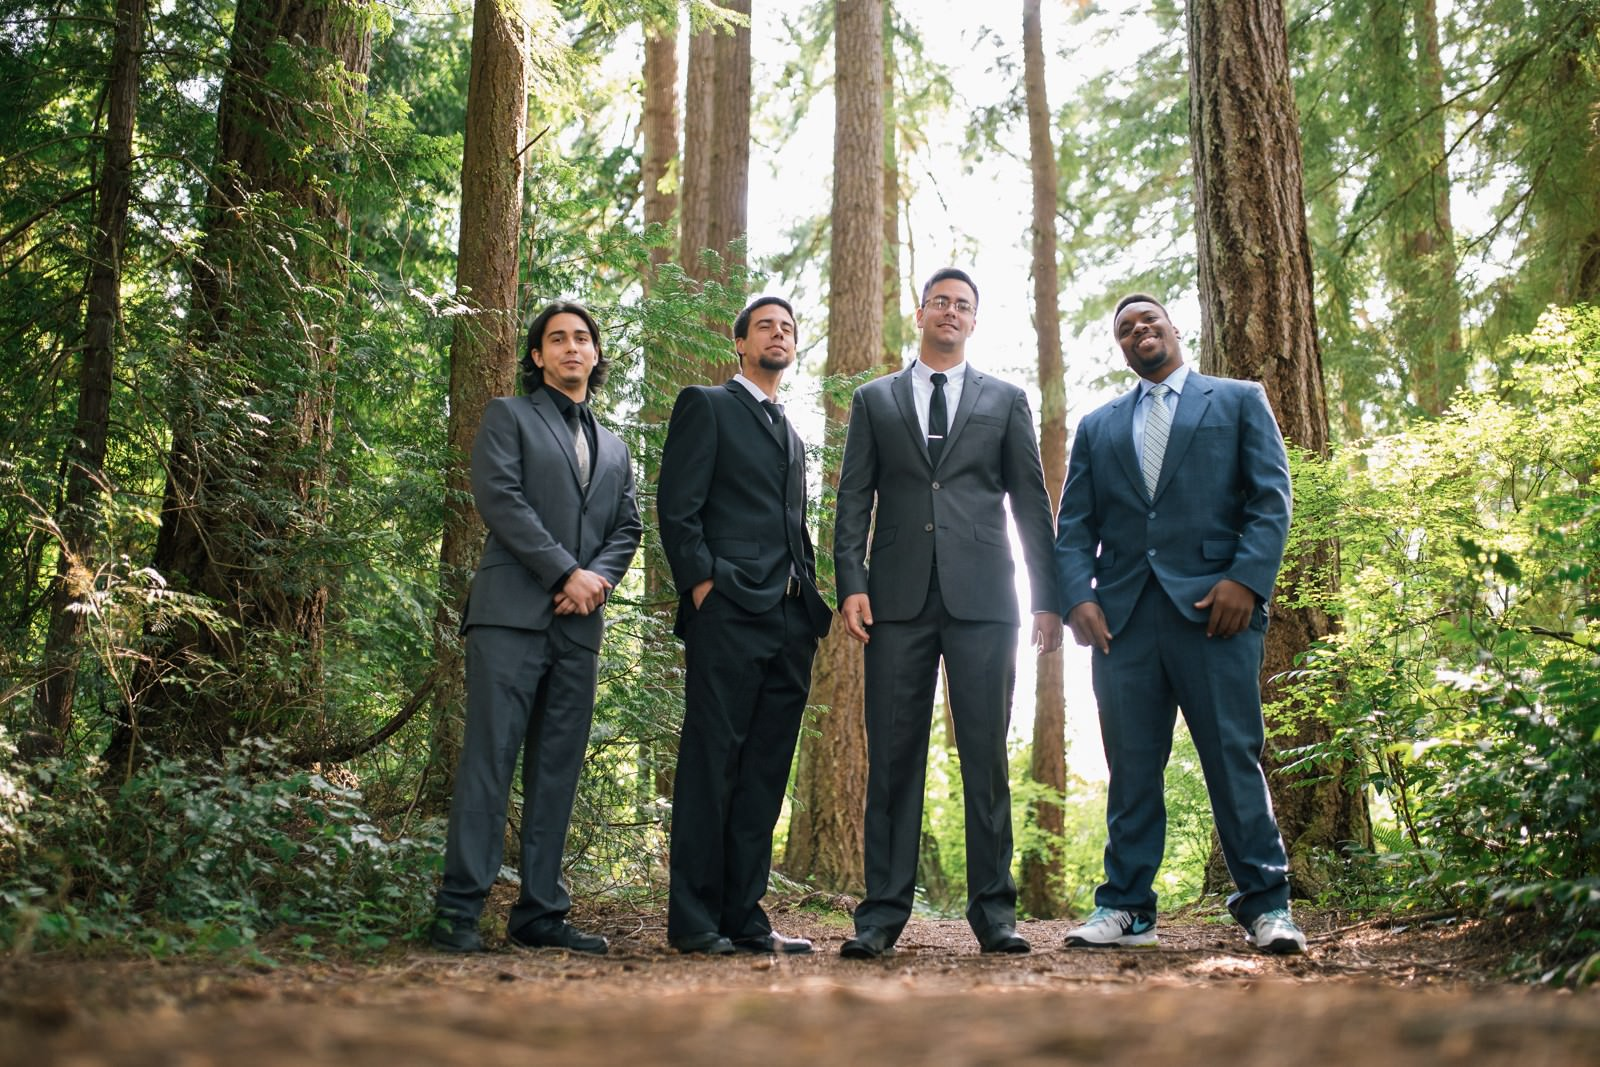 seattle-wedding-photographers-kitsap-memorial-state-park-wedding-31